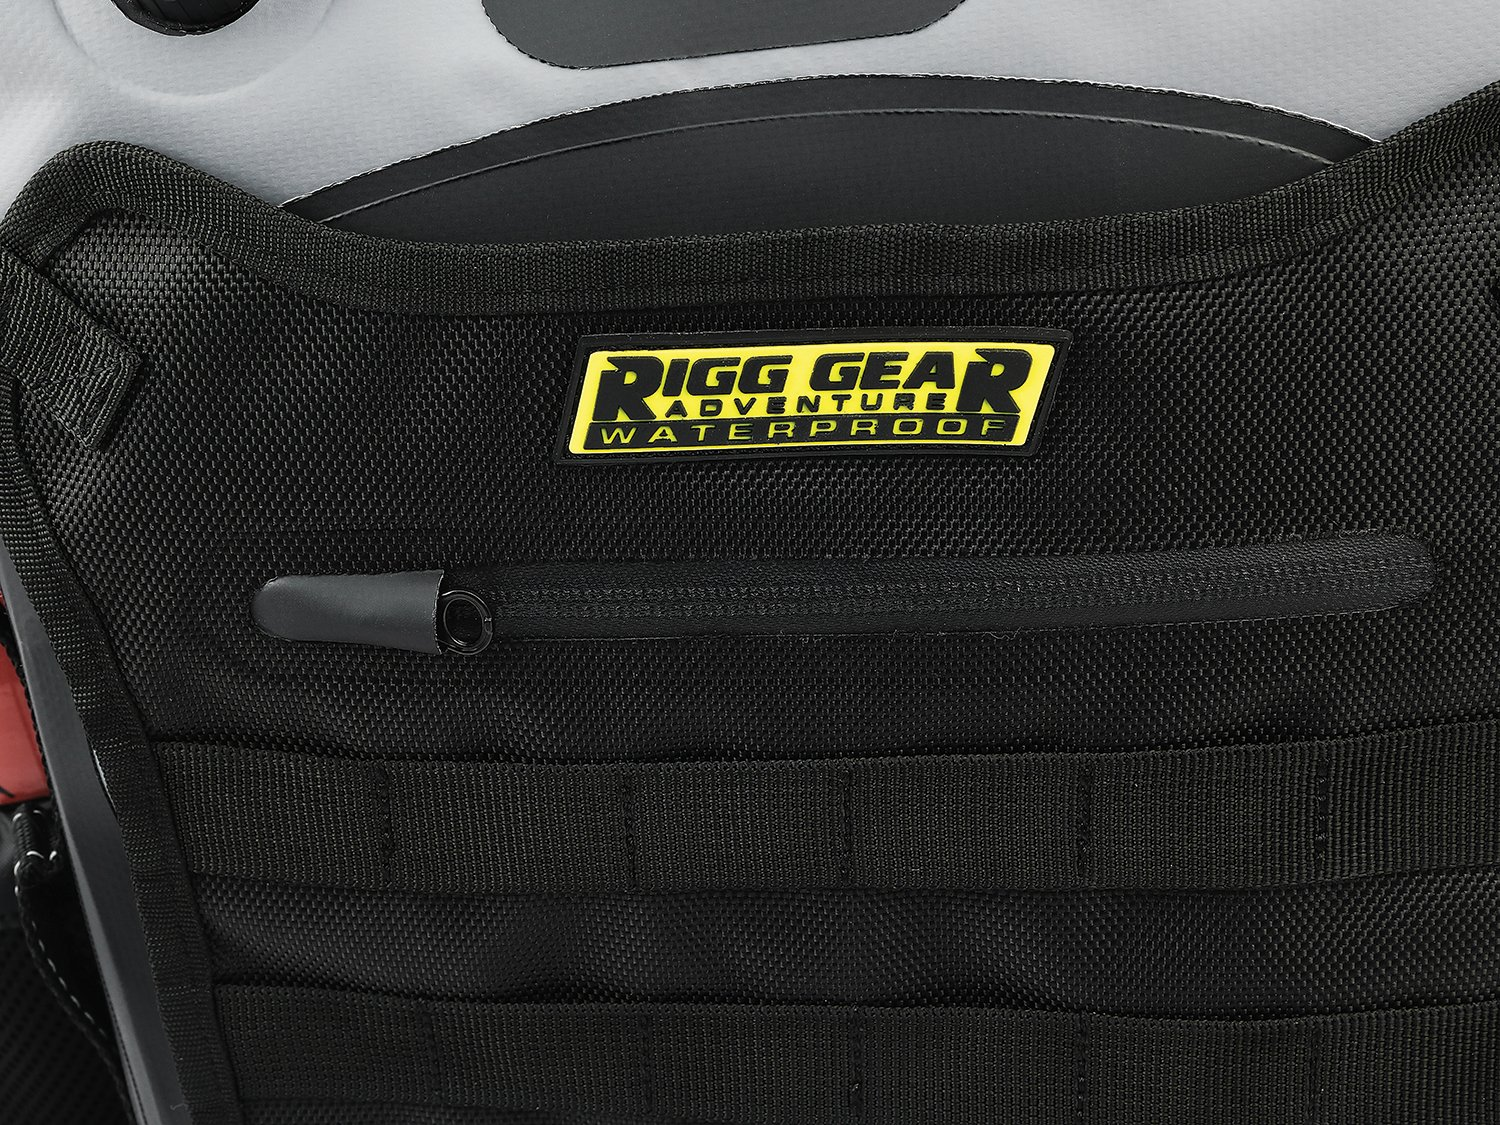 Nelson Rigg SE-3020 20 Liter Rigg Gear Hurricane Waterproof Backpack//Tail Pack